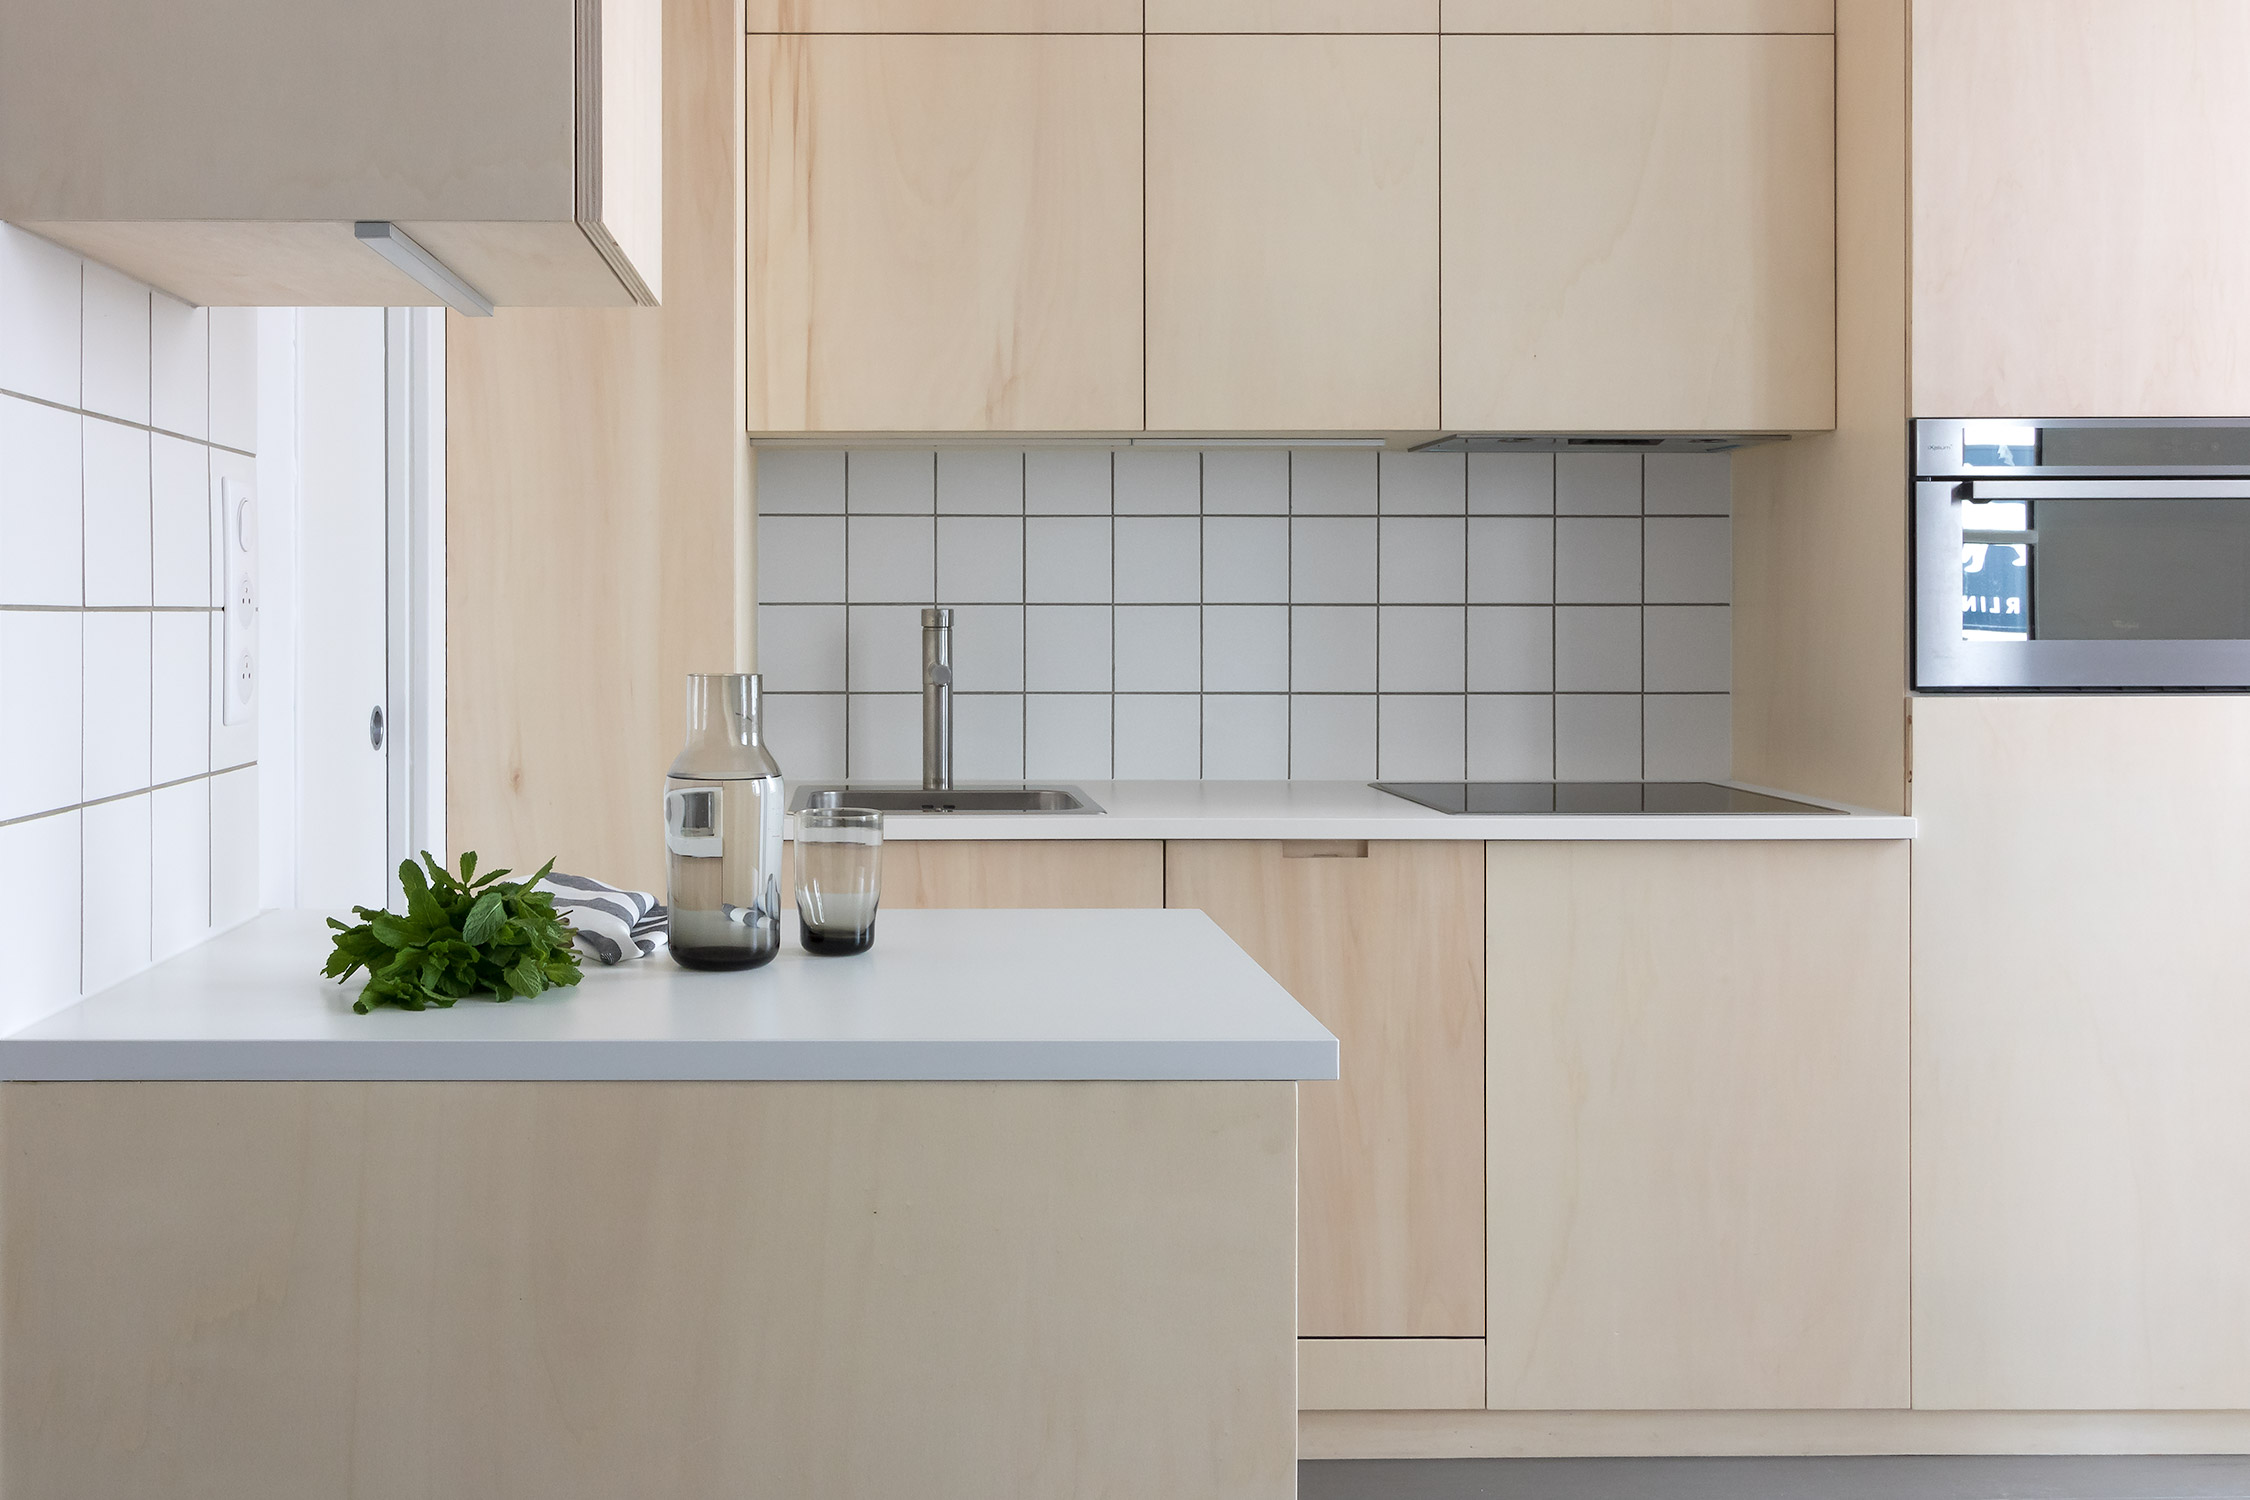 Japanese style, minimal, modern, open-plan, plywood kitchen with grey oak floor and white tiles